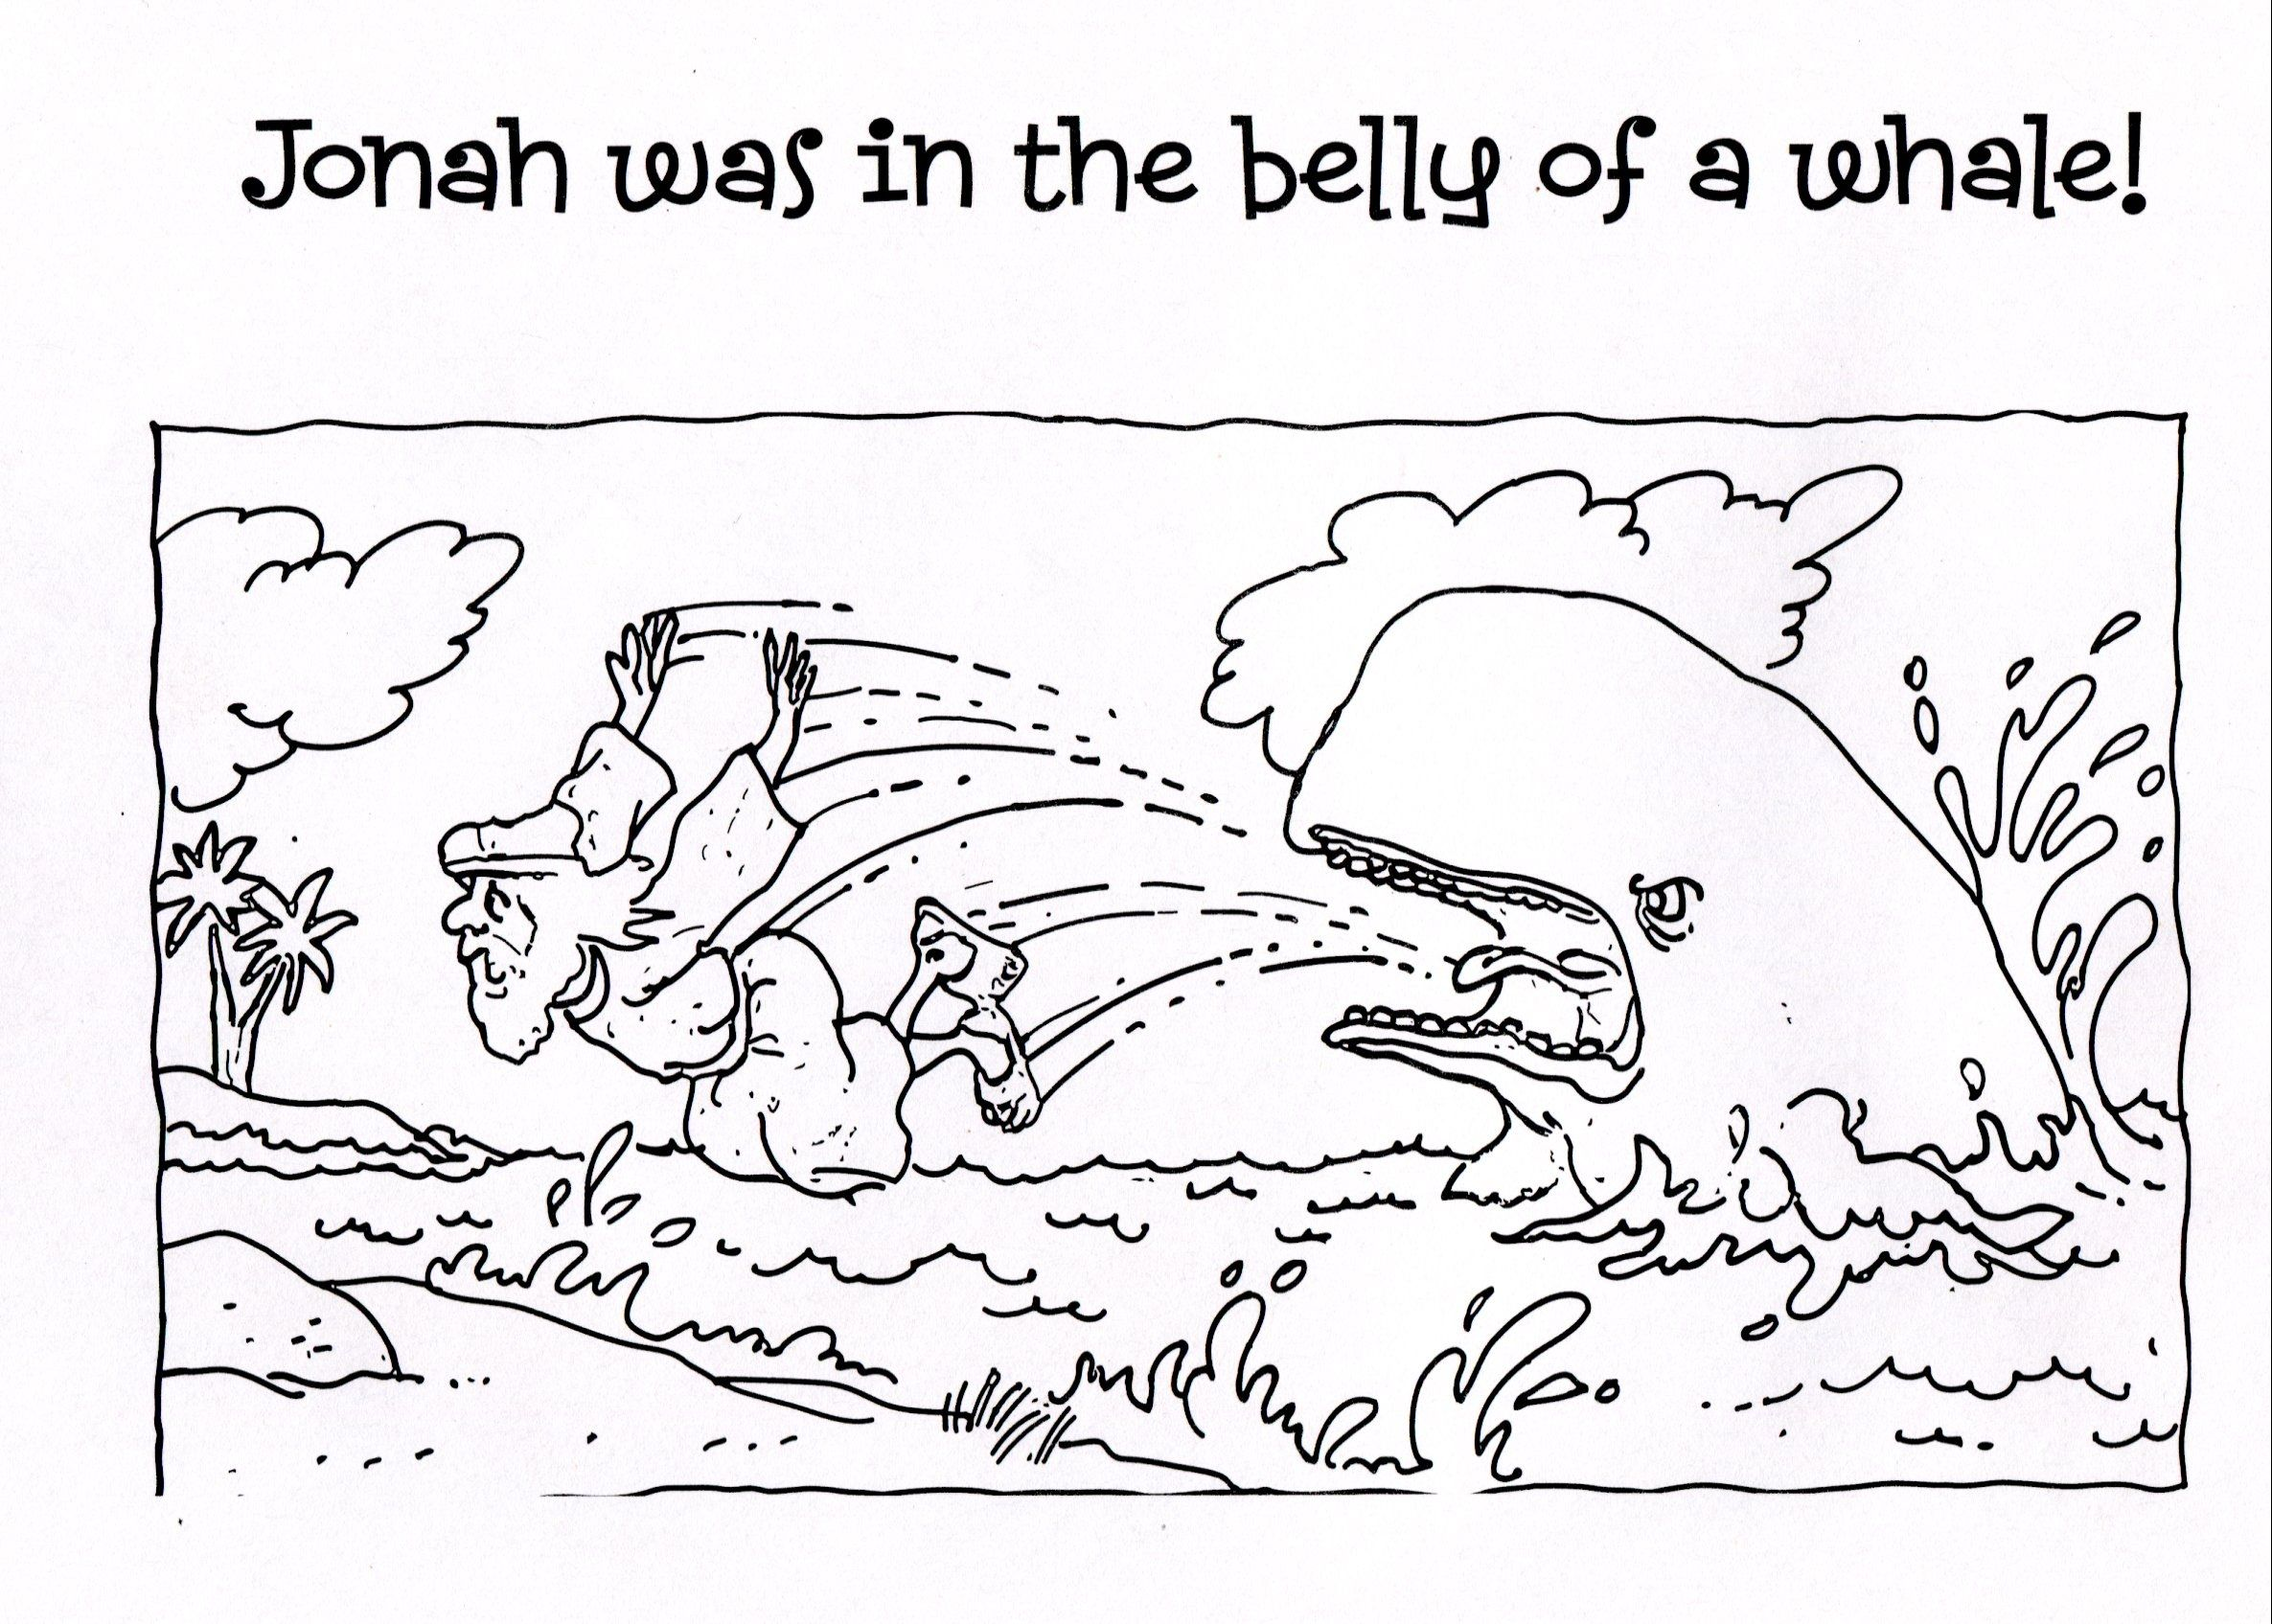 Free Printable Jonah And The Whale Coloring Pages For Kids Whale Coloring Pages Jonah And The Whale Bible Coloring Pages